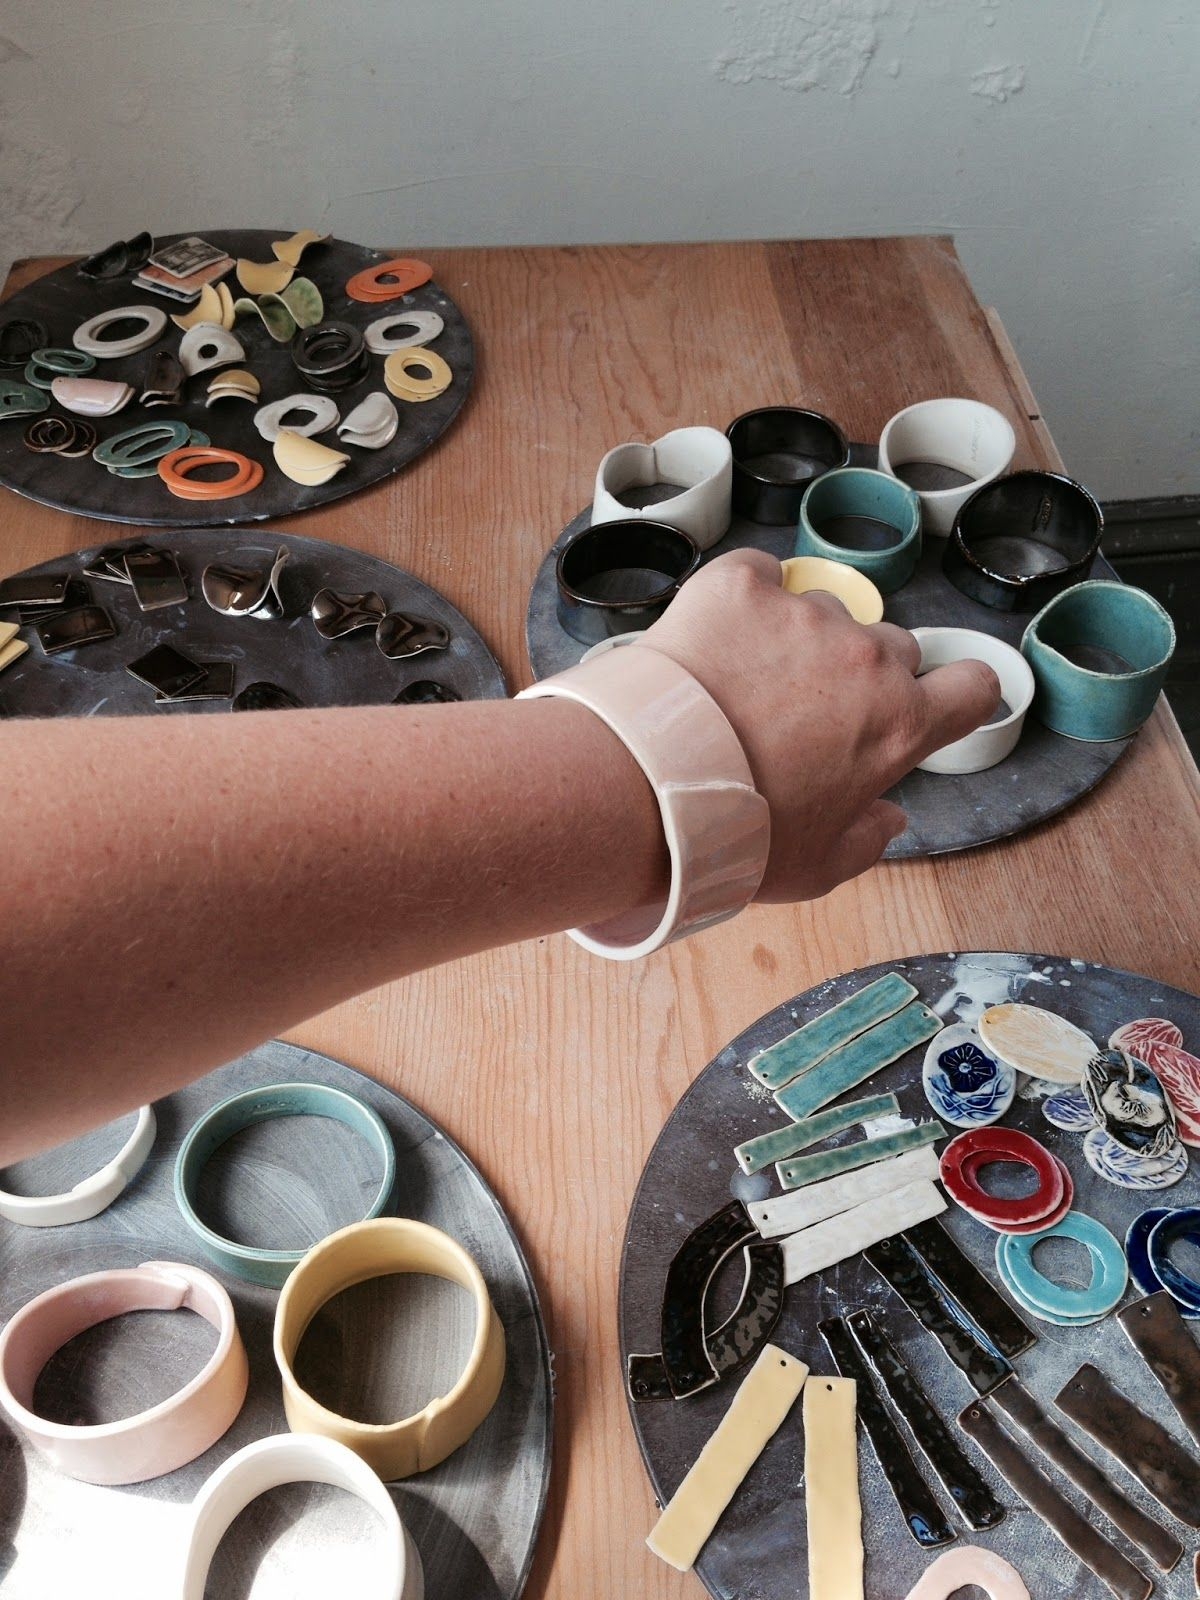 Harmony Thompson - Artist and Educator: cuff bracelets and earrings